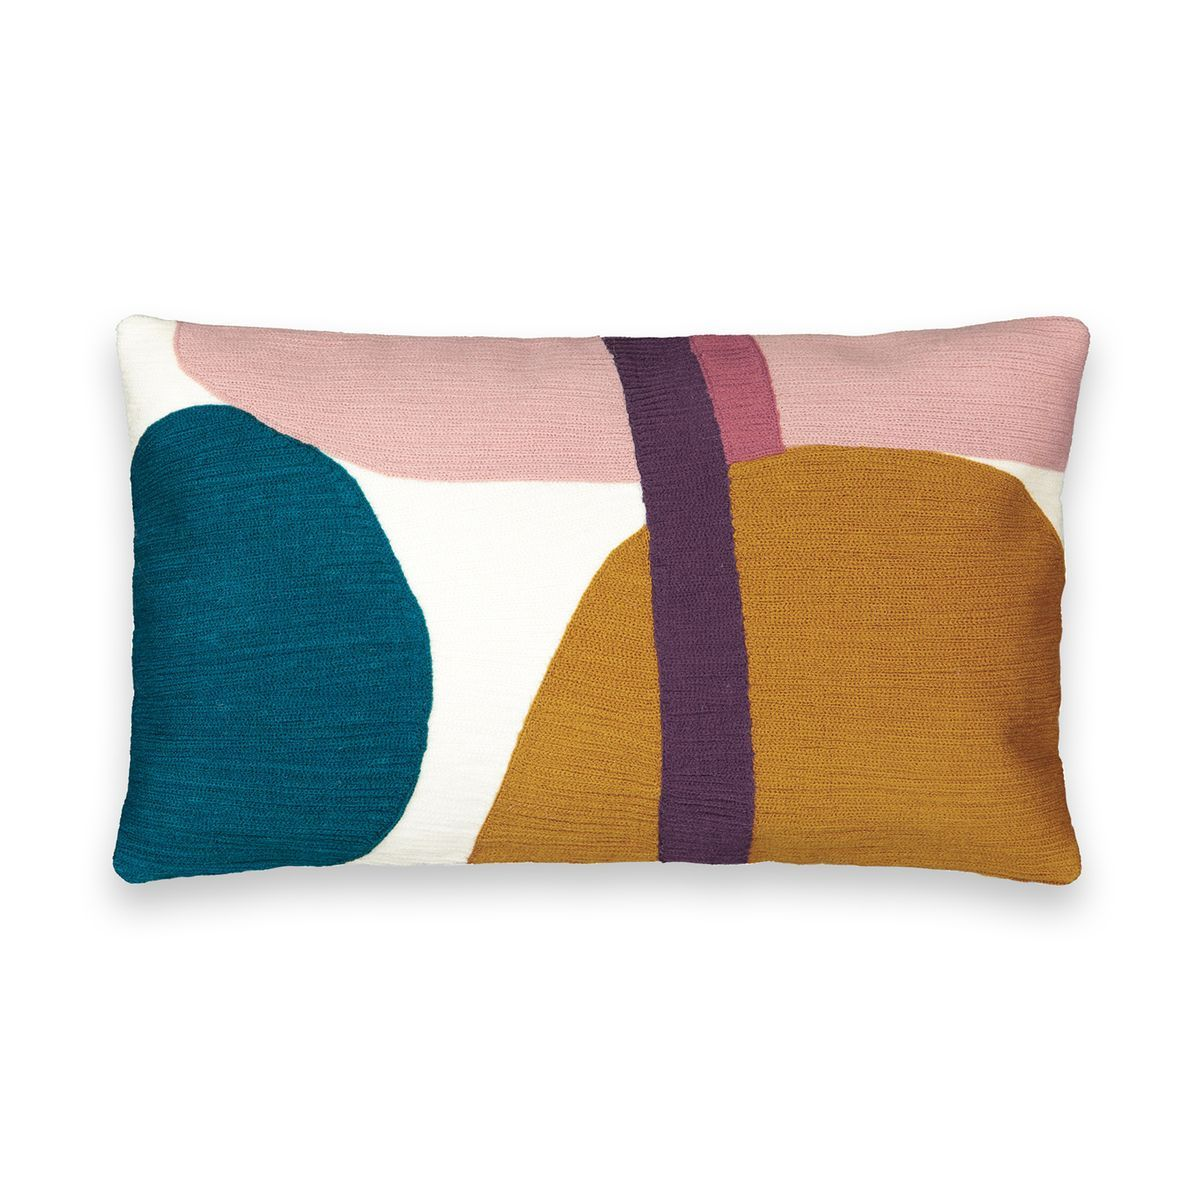 Housse De Coussin Brodee Humfy Taille 50x30 Cm Housse De Coussin Coussin Brode Et Coussins Multicolores